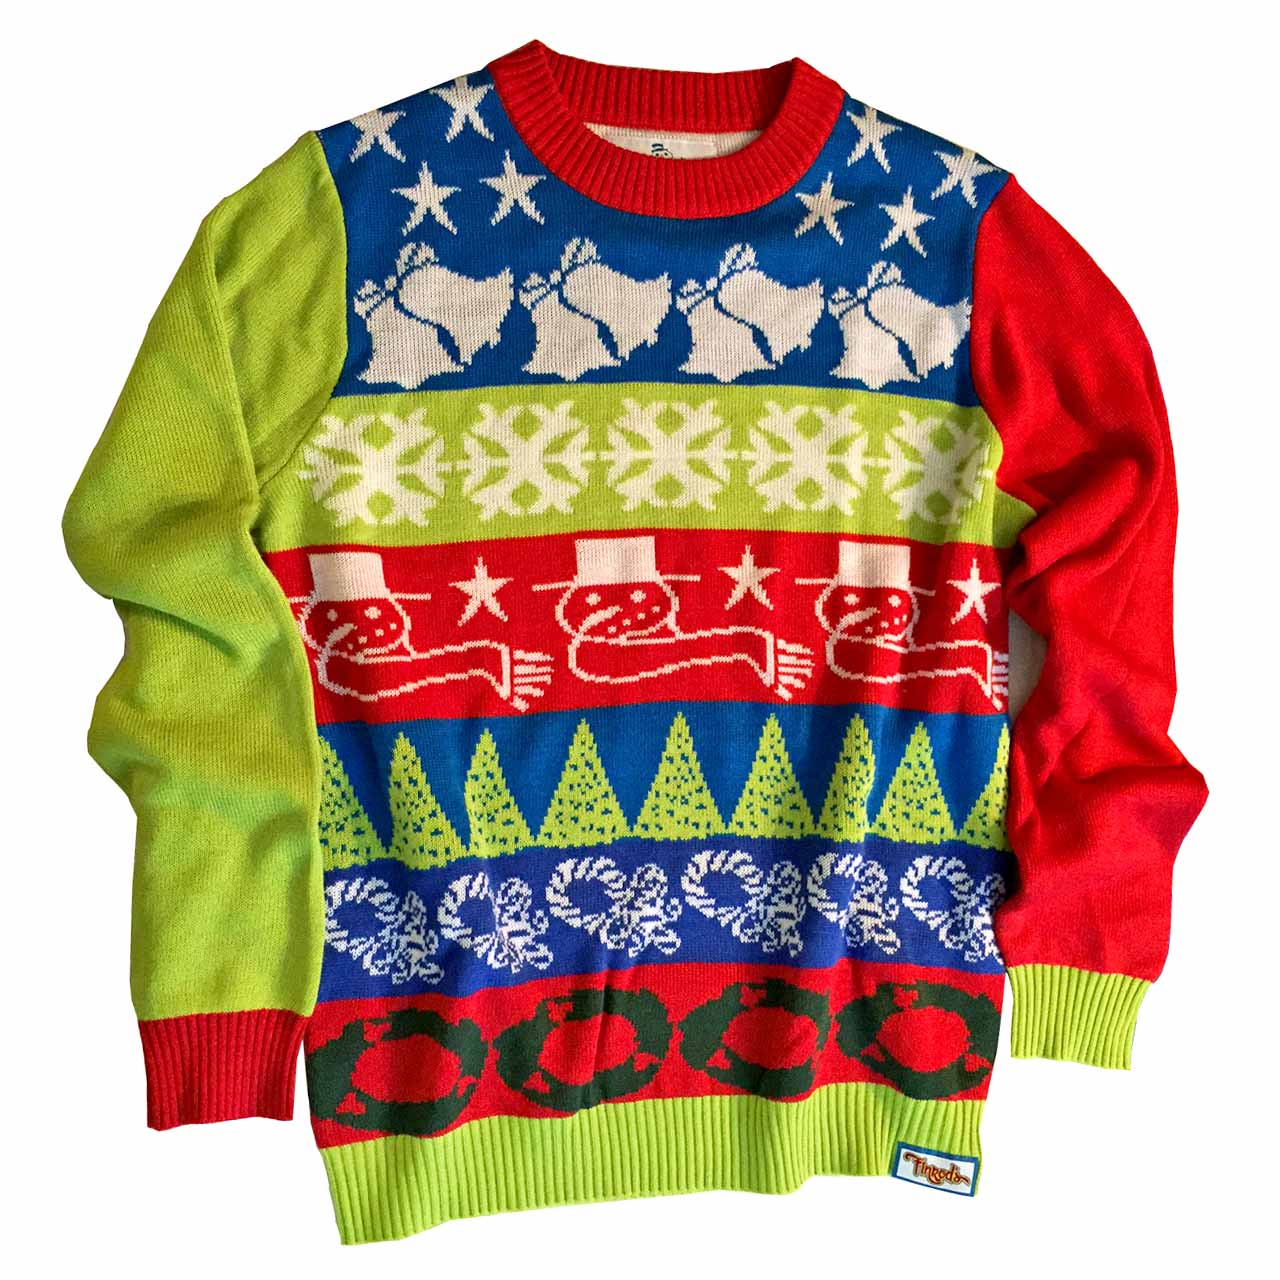 7658f3e98f9 Crazy Bells Ugly Christmas Sweater